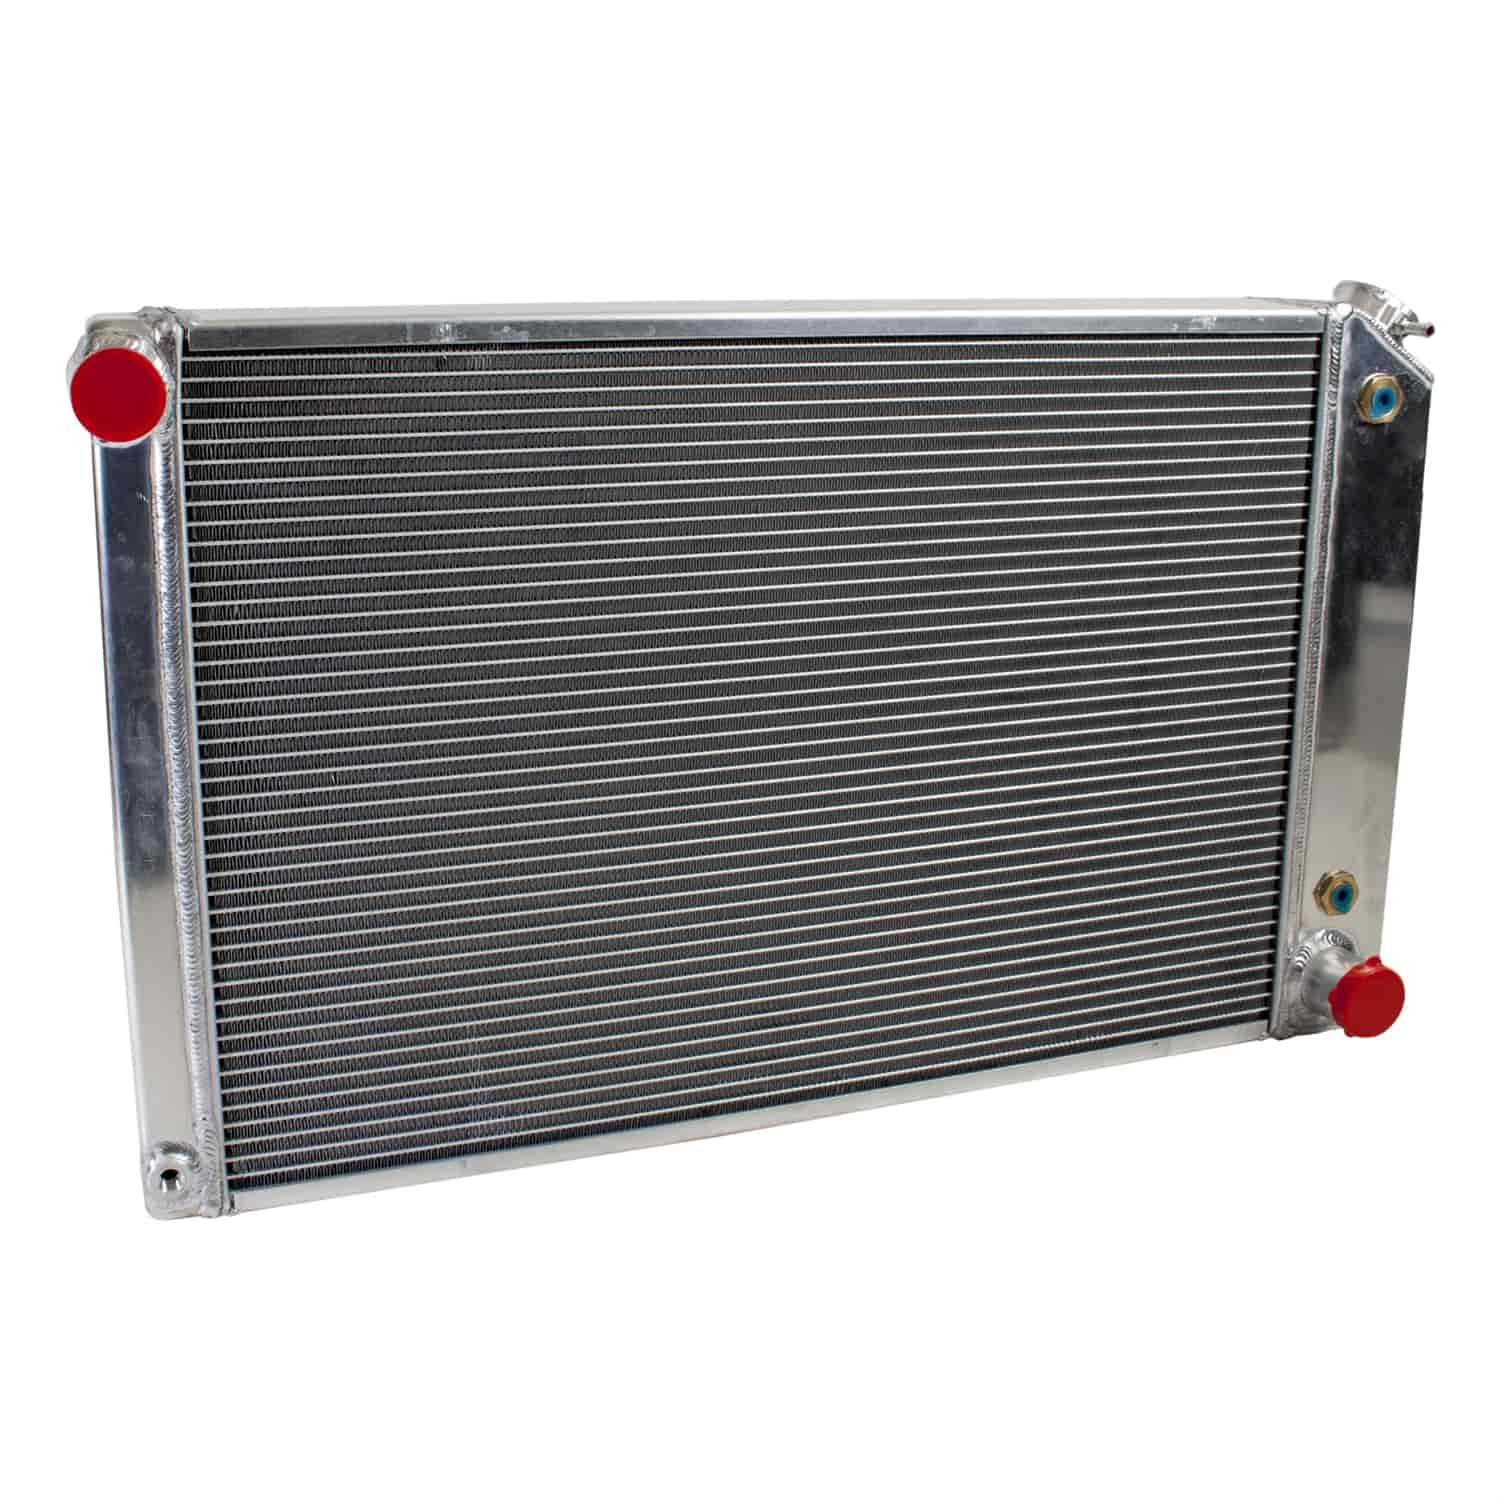 Griffin Radiators 8-70010